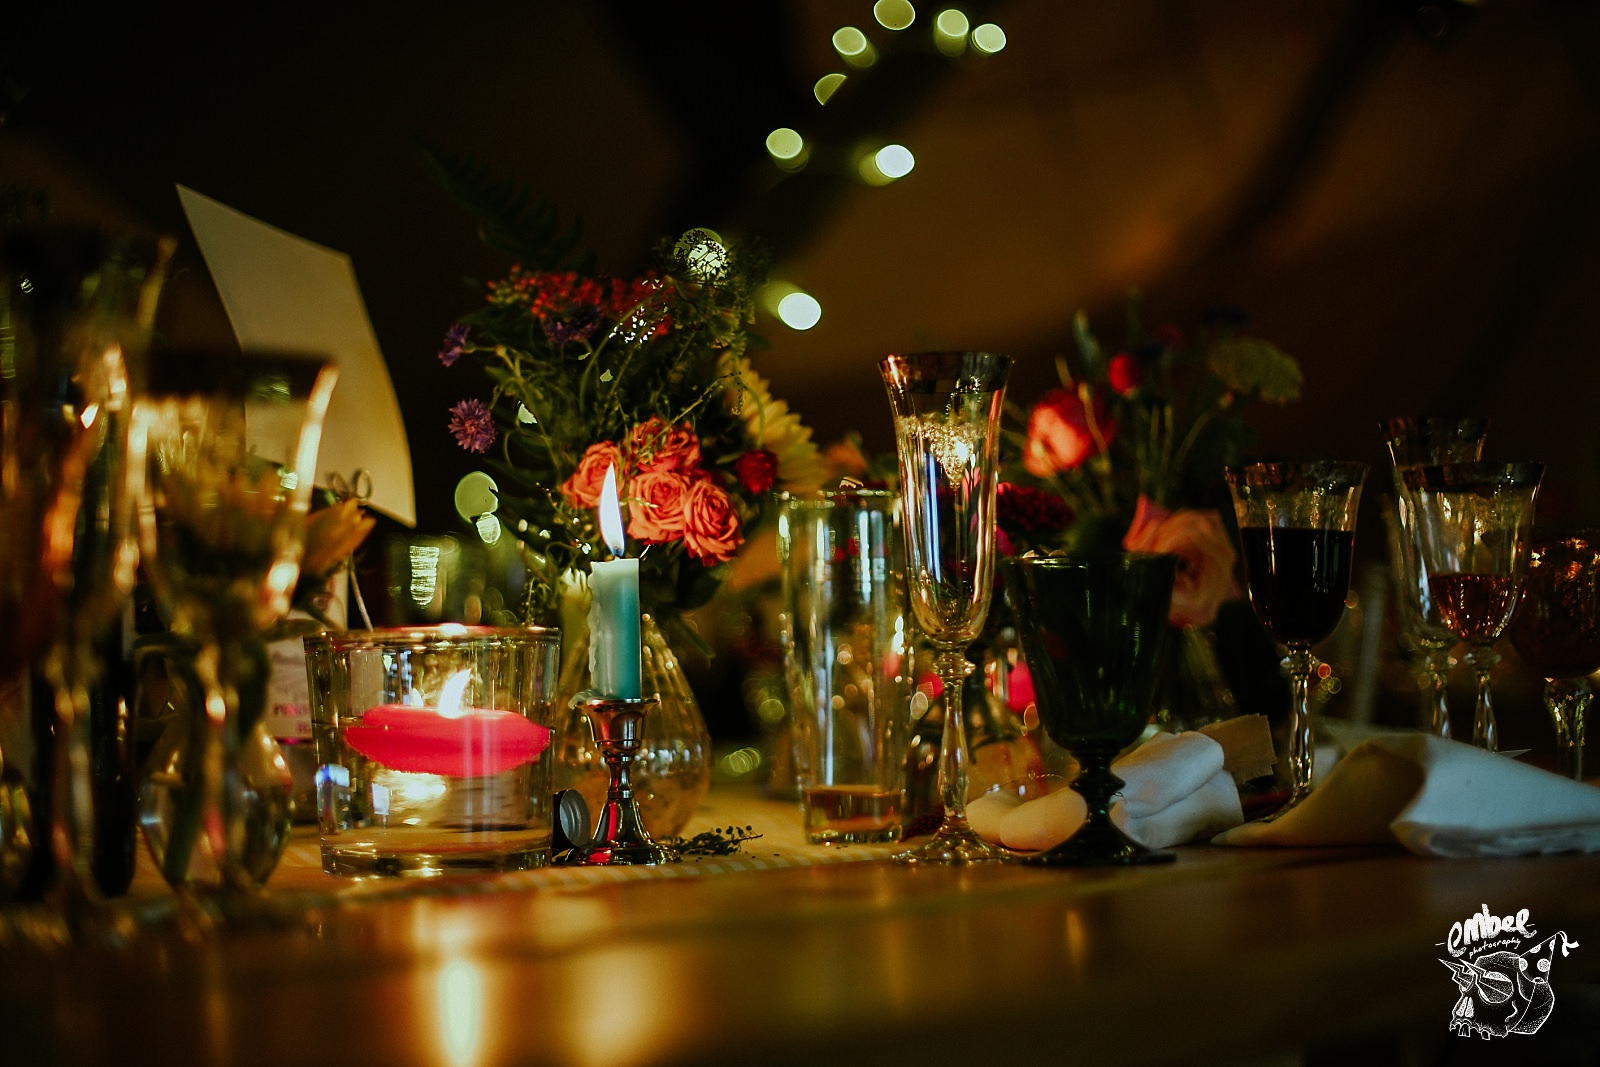 flowers and candles on table